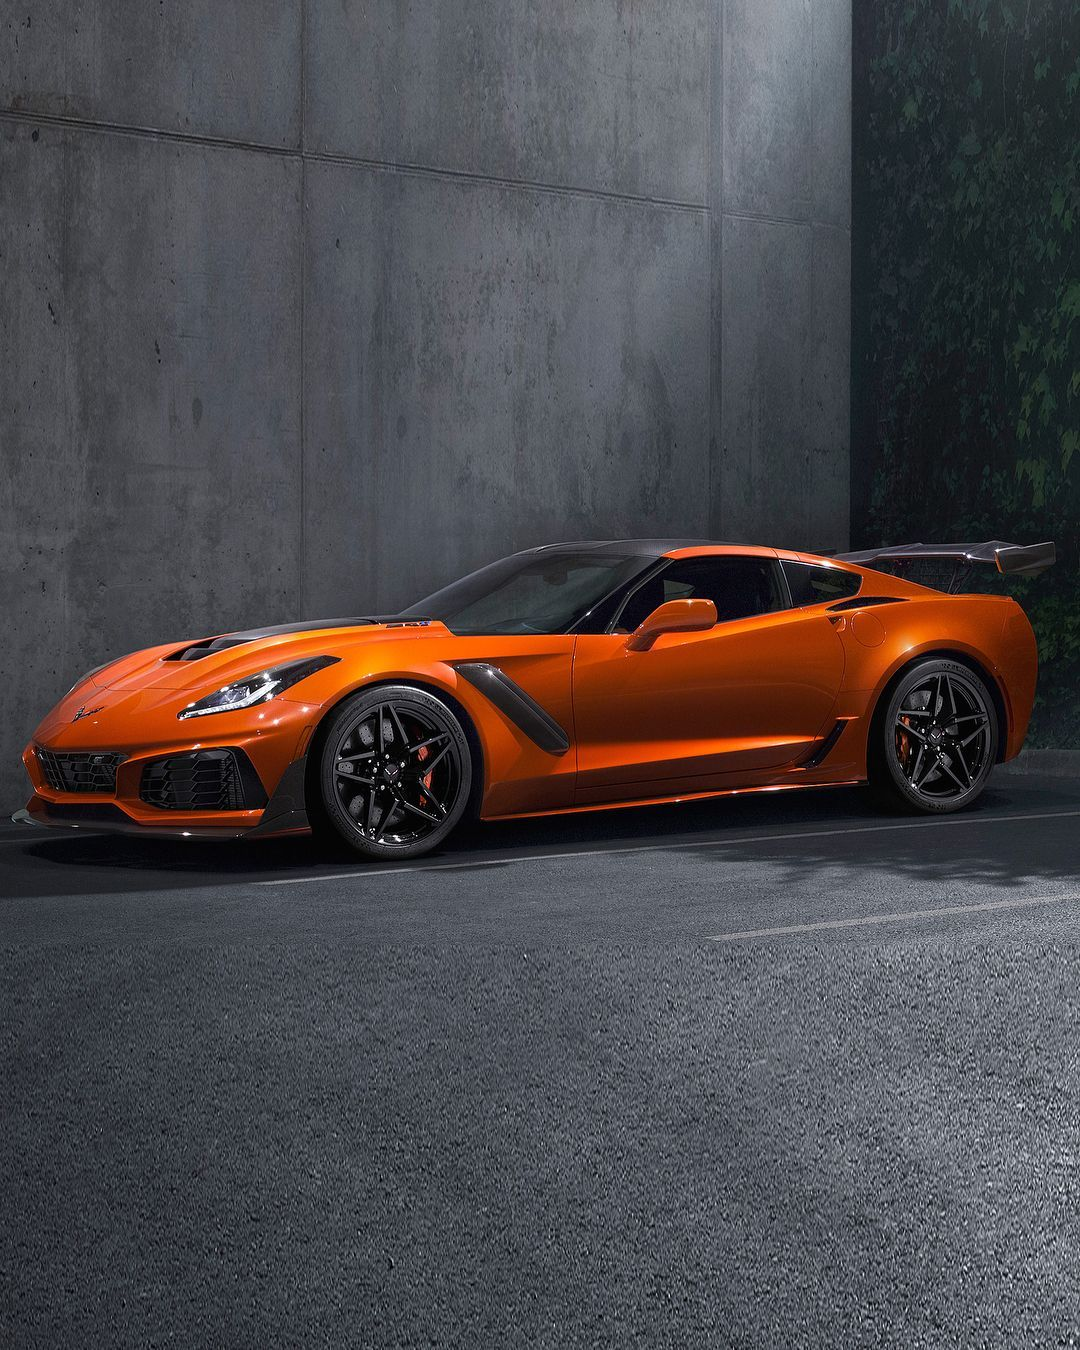 The 755 Hp 2019 Chevrolet Corvette Zr1 Chevrolet Corvette C7